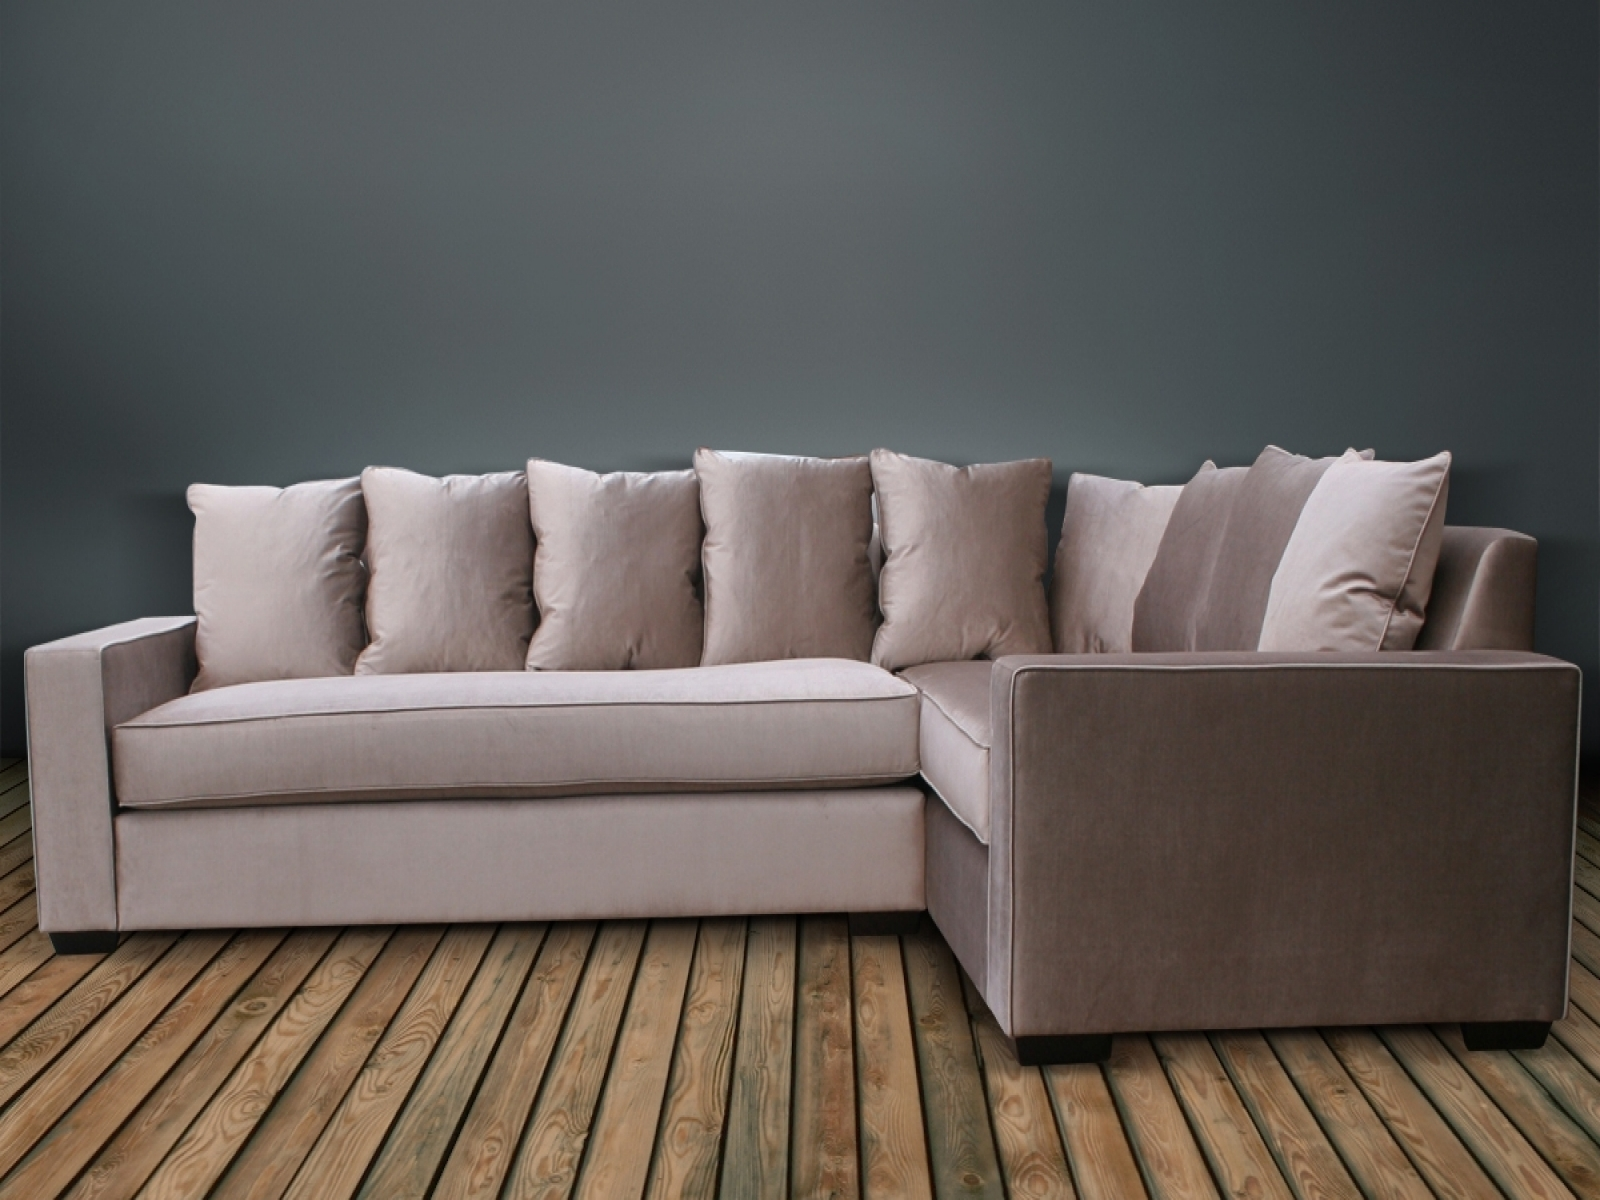 Bespoke Corner Sofas Northern Ireland Loopon Sofa Intended For Bespoke Corner Sofas (Image 7 of 15)